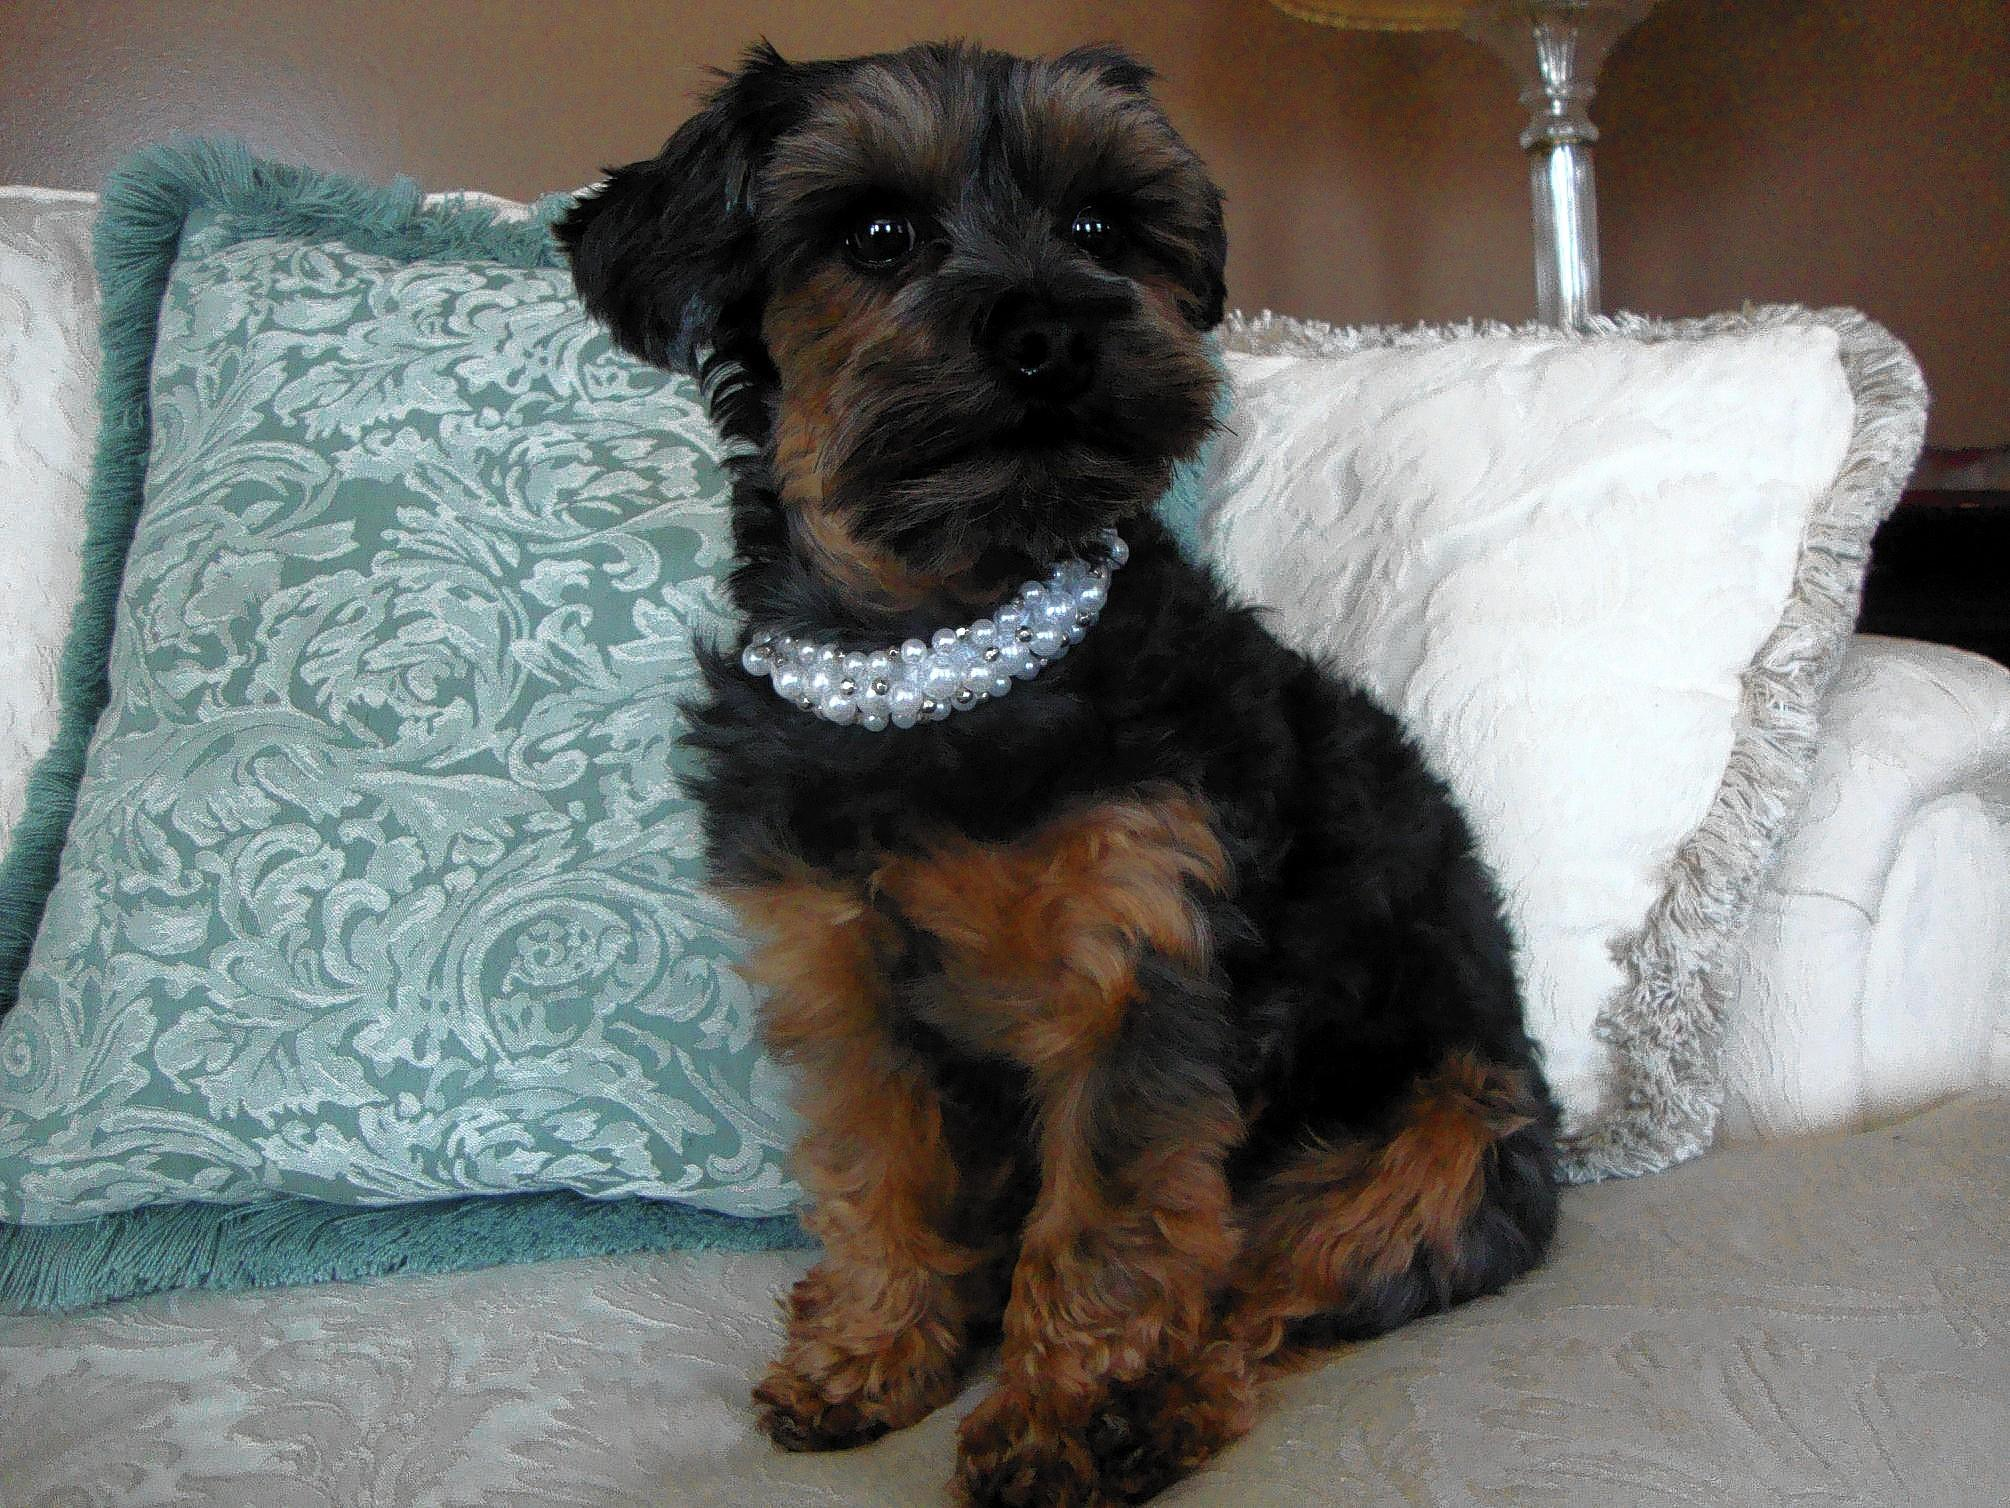 Kiwi, a 3 and a half year old Yorkiepoo, owned and loved by Michele Angell, 50, of Macungie.